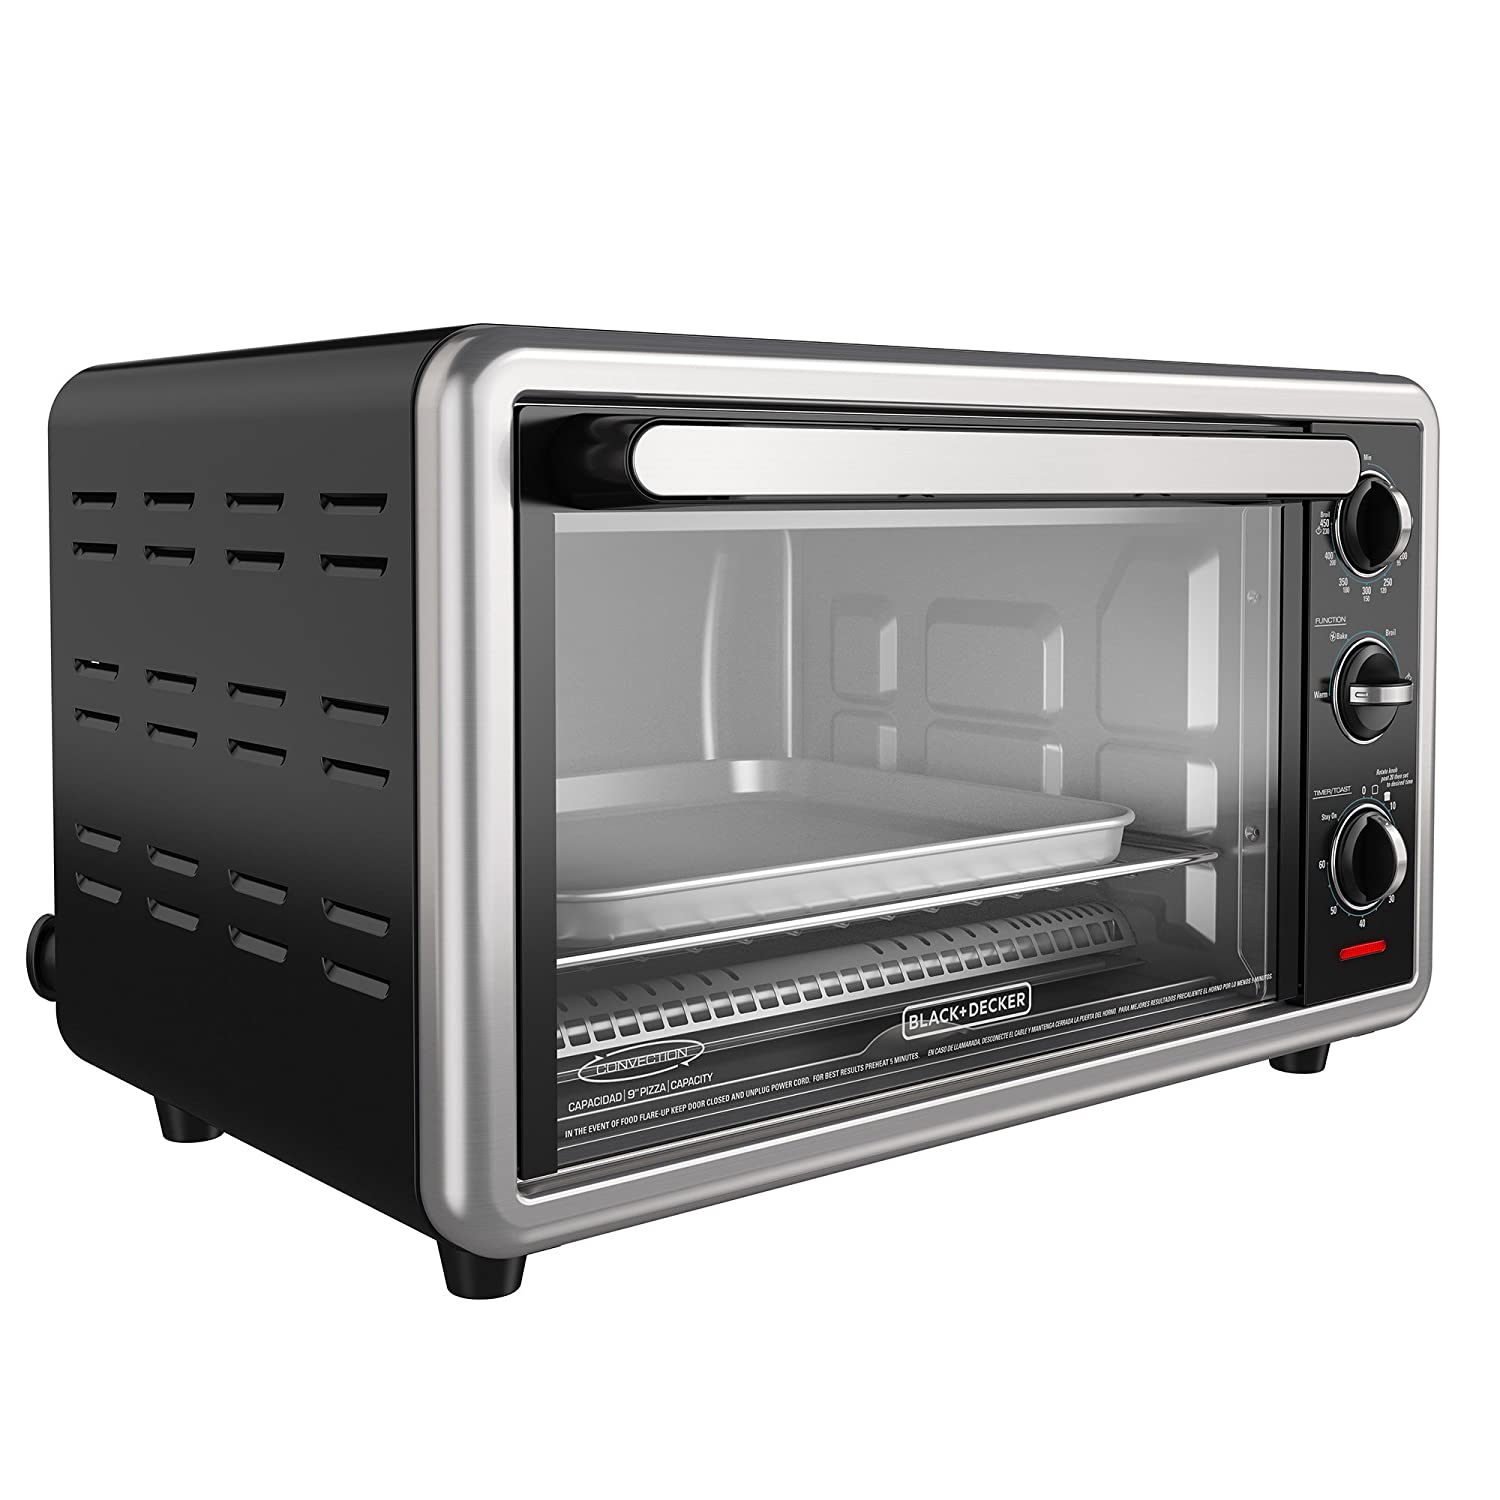 Horno Convection Oven Hornodeconveccion Com